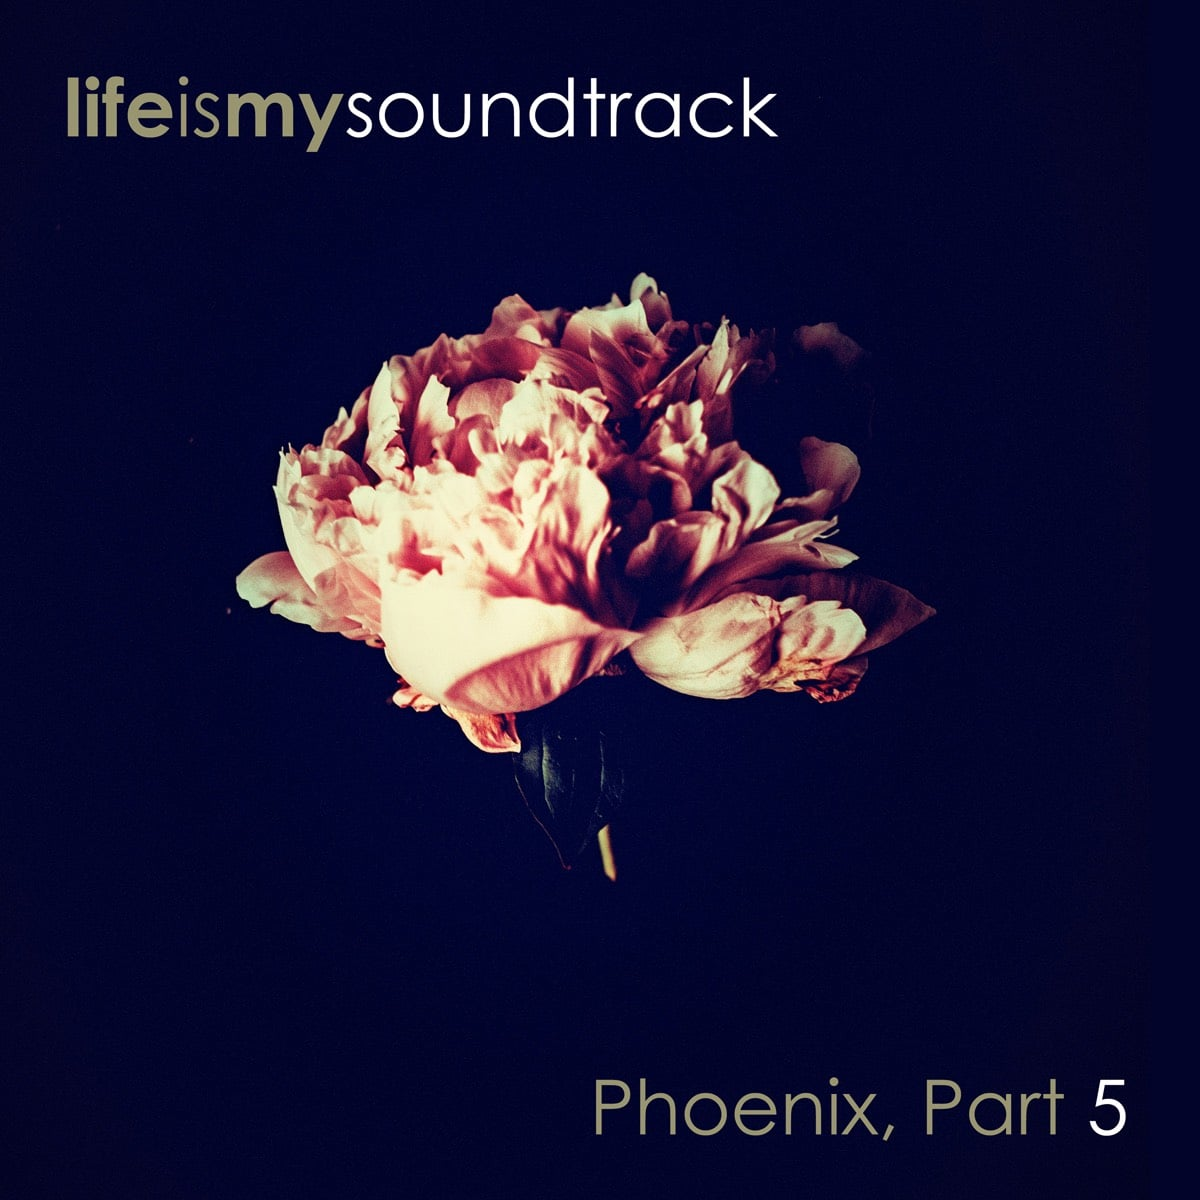 The album Phoenix, Part 5 by Life Is My Soundtrack - Part 5 of a collection of songs created over several years, but never finished until now